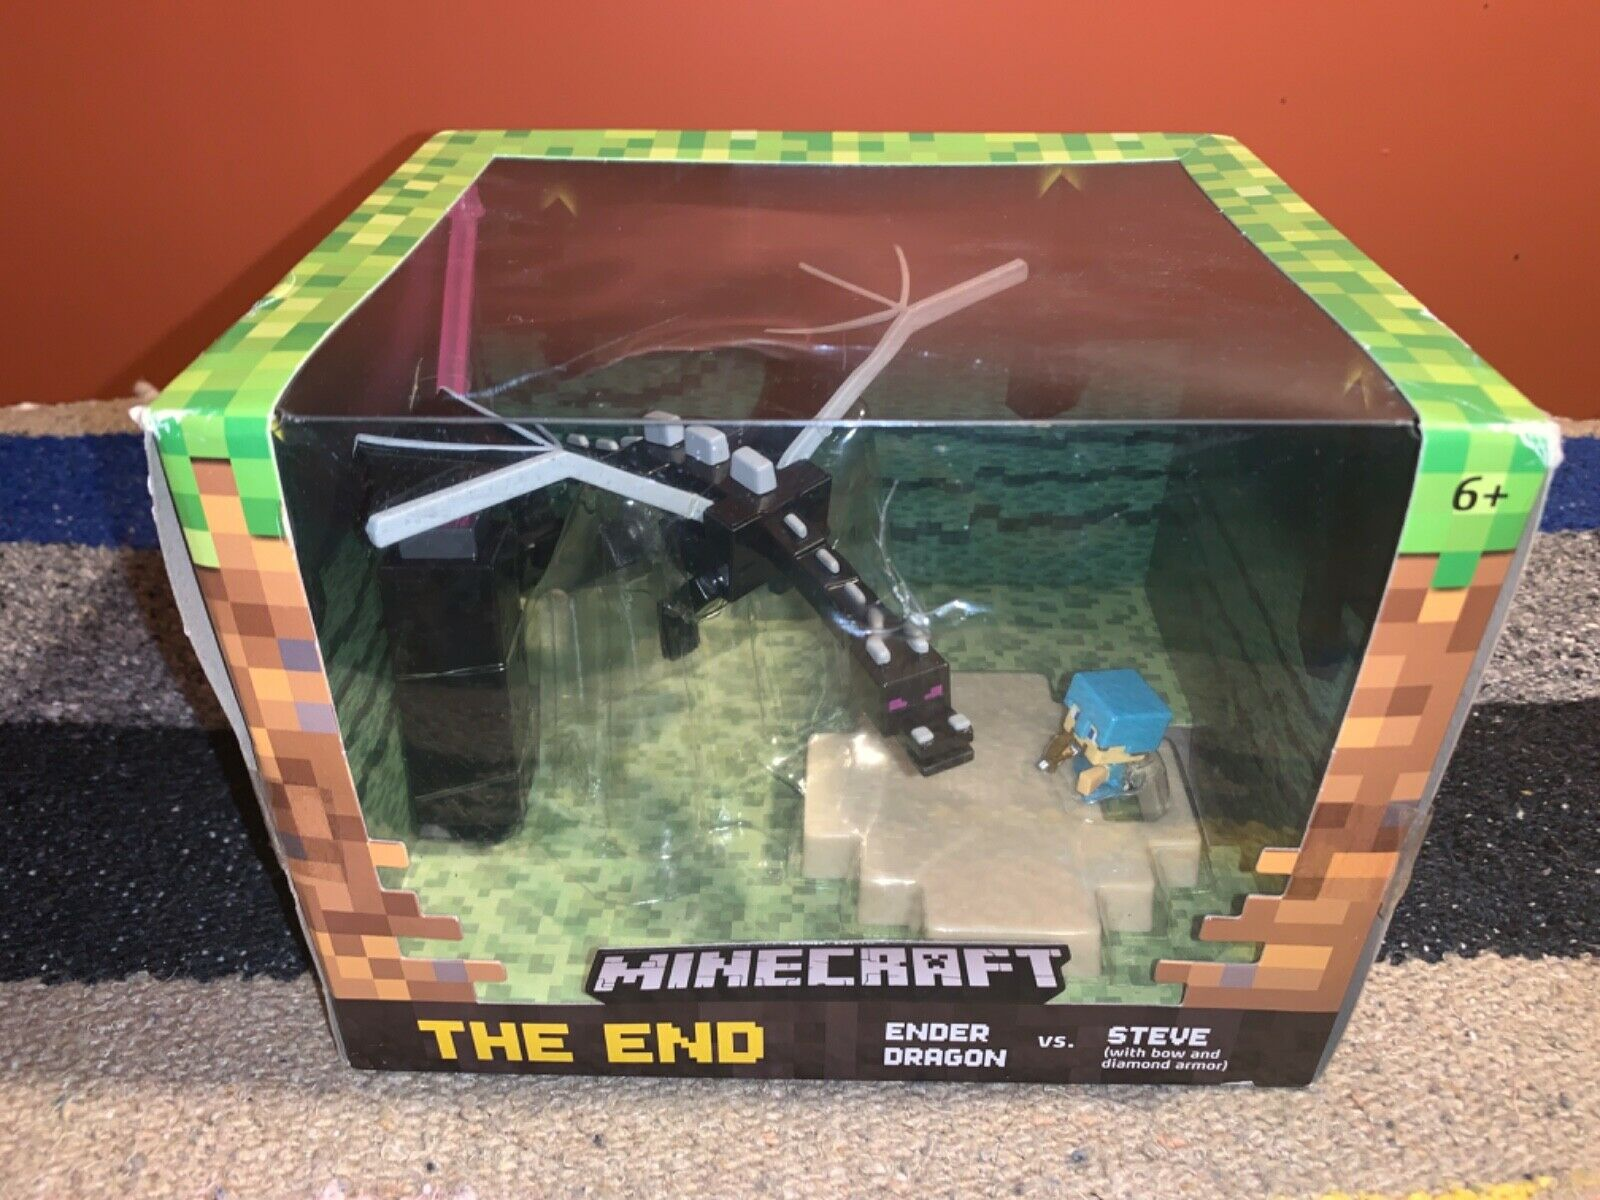 Minecraft The Ender Dragon Vs Steve Figure Djy38 For Sale Online Ebay Want to discover art related to enderdragon? 2015 minecraft the end ender dragon vs steve new toy